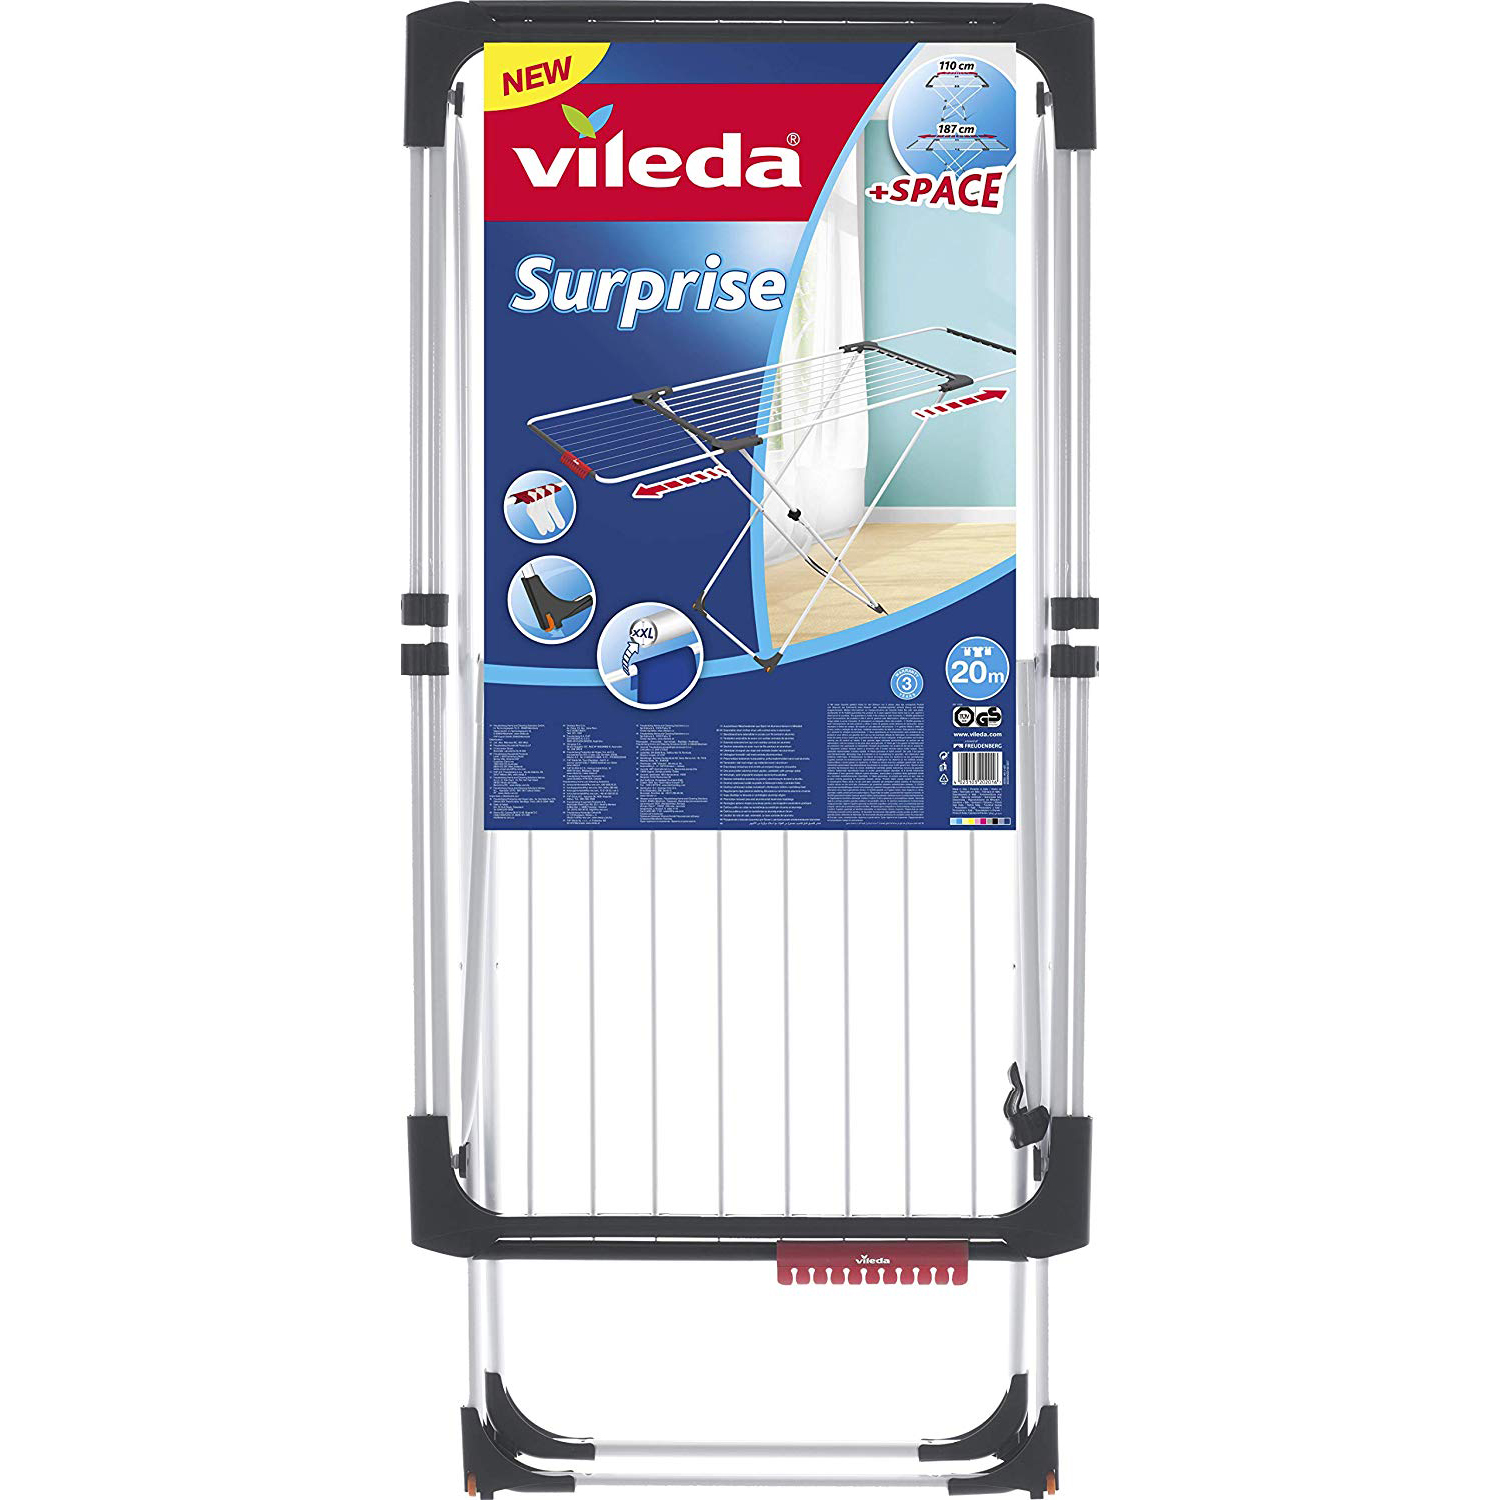 Vileda Surprise Aluminum Extendable X-Leg Indoor Cloth Dryer VLID157236 - 20m (pc)